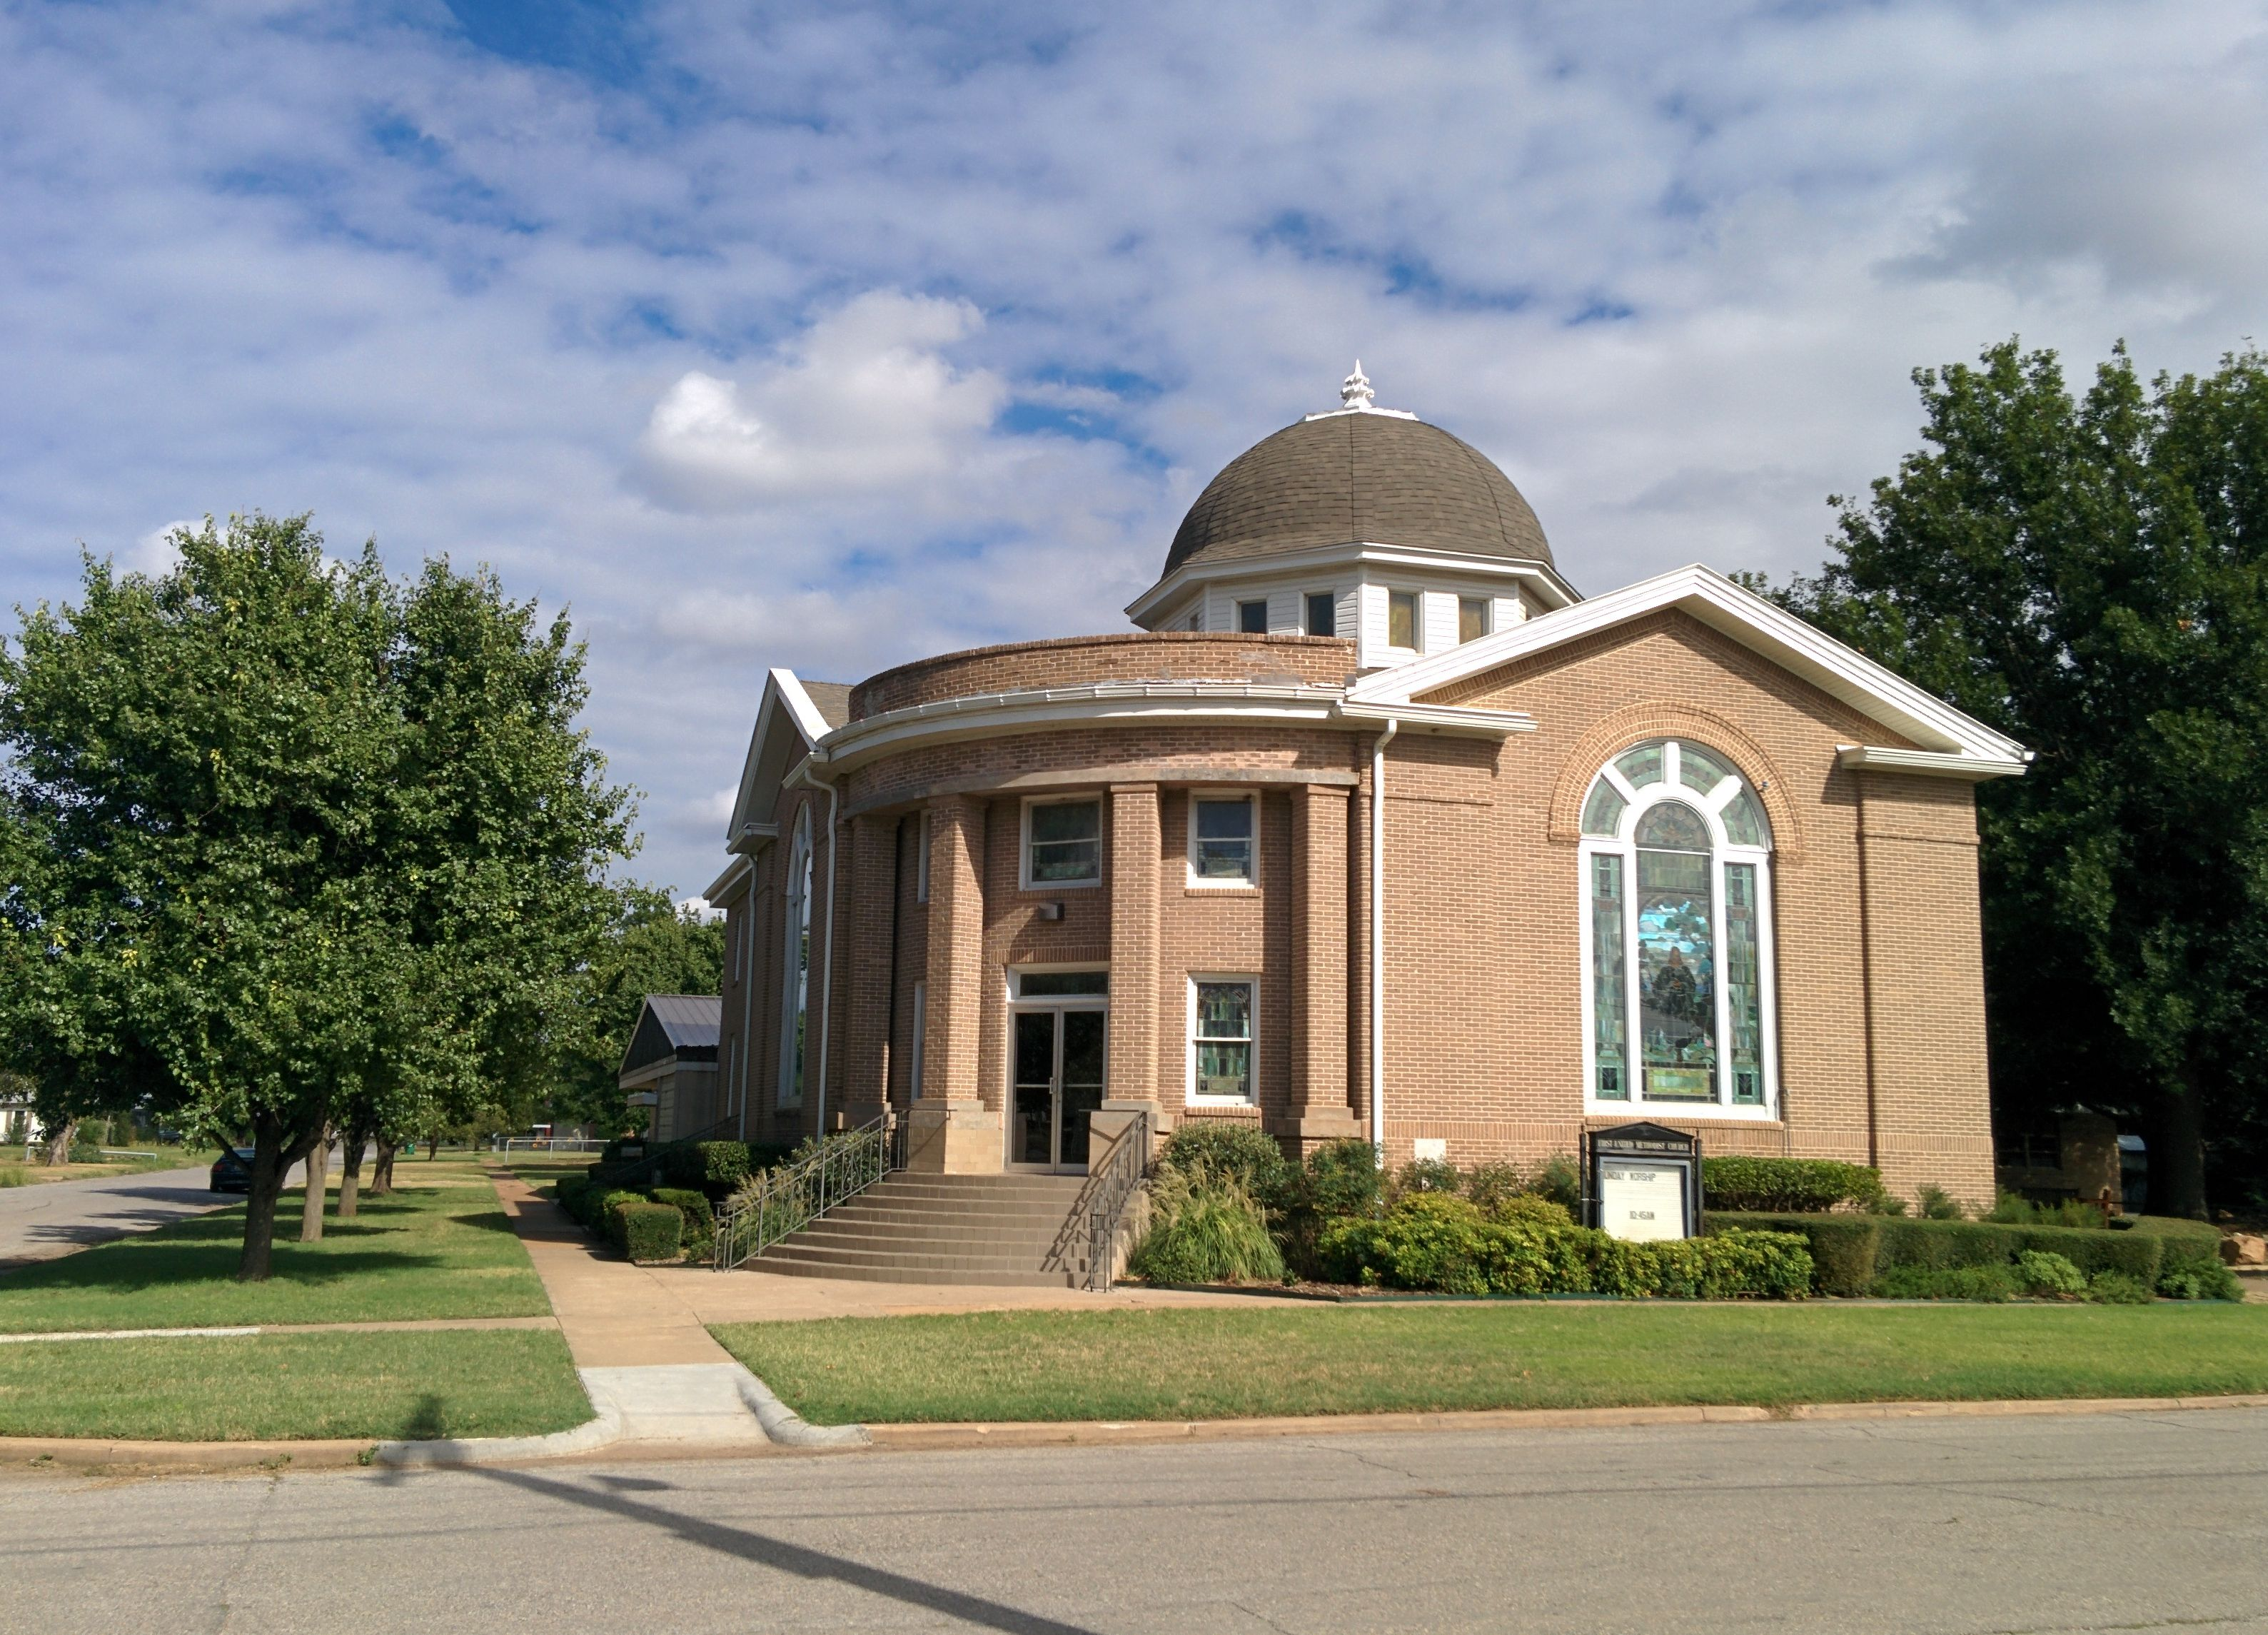 First United Methodist Church By Crimsonedge34 - Own work, CC BY-SA 3.0, https://commons.wikimedia.org/w/index.php?curid=35221643